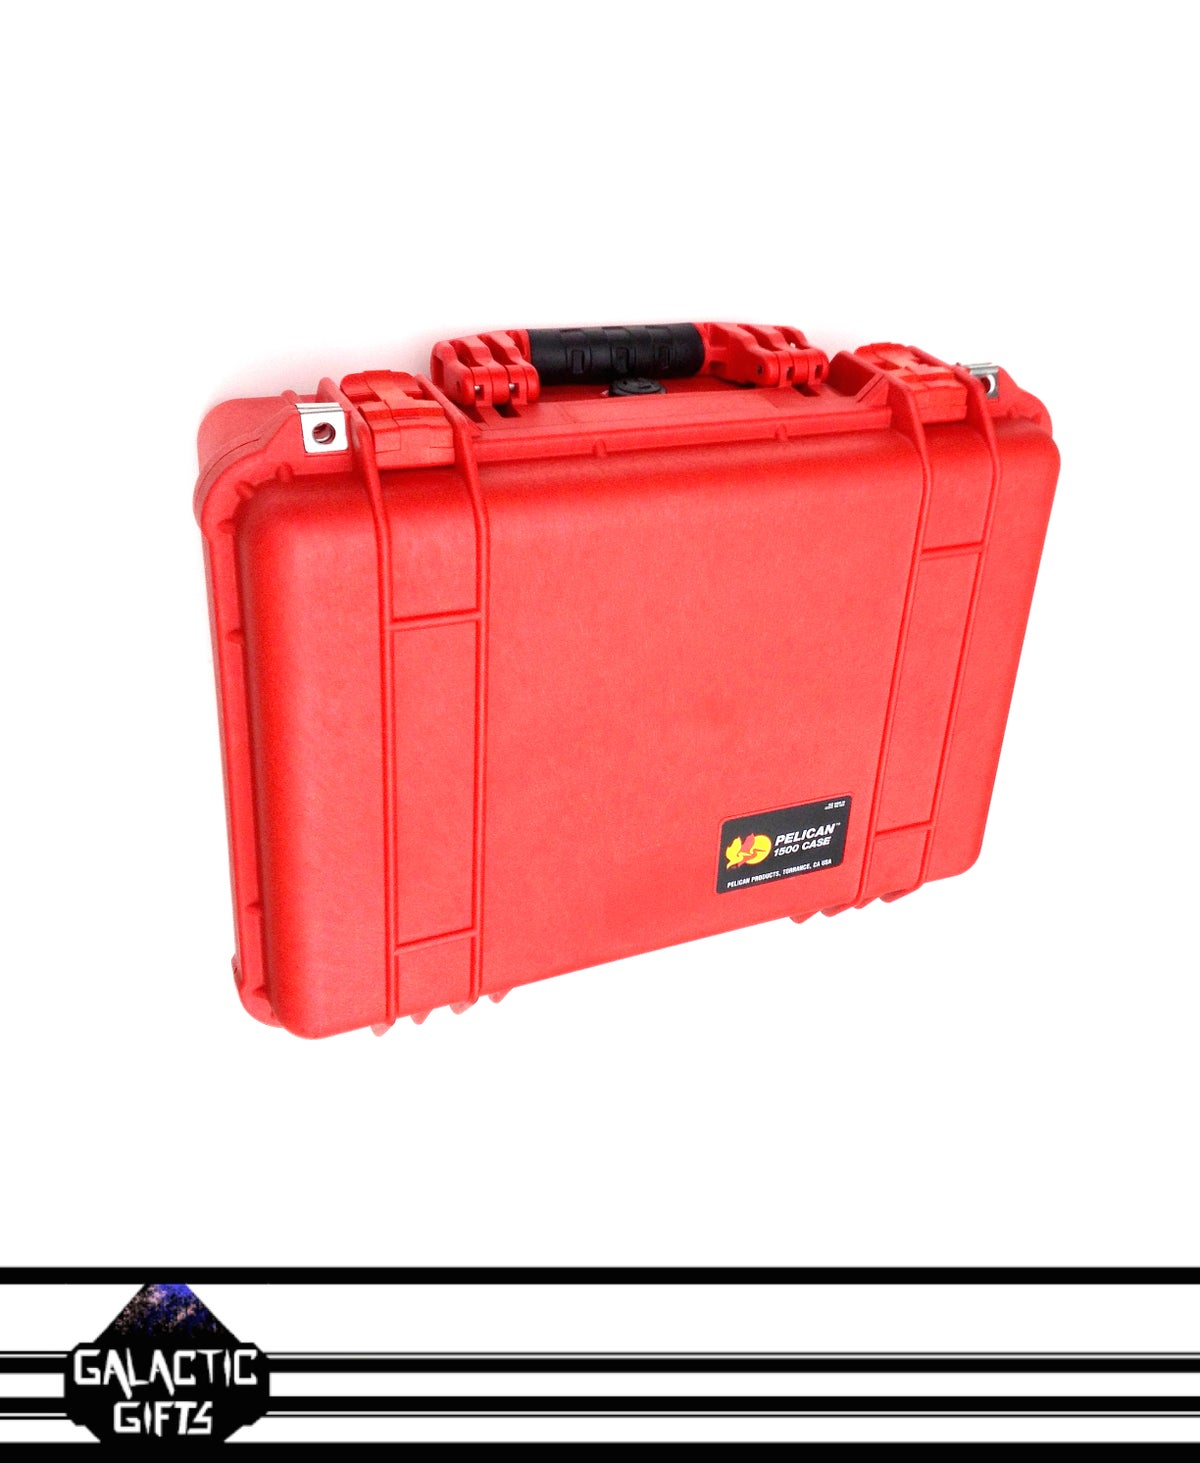 Image of Pelican Case 1500 Red